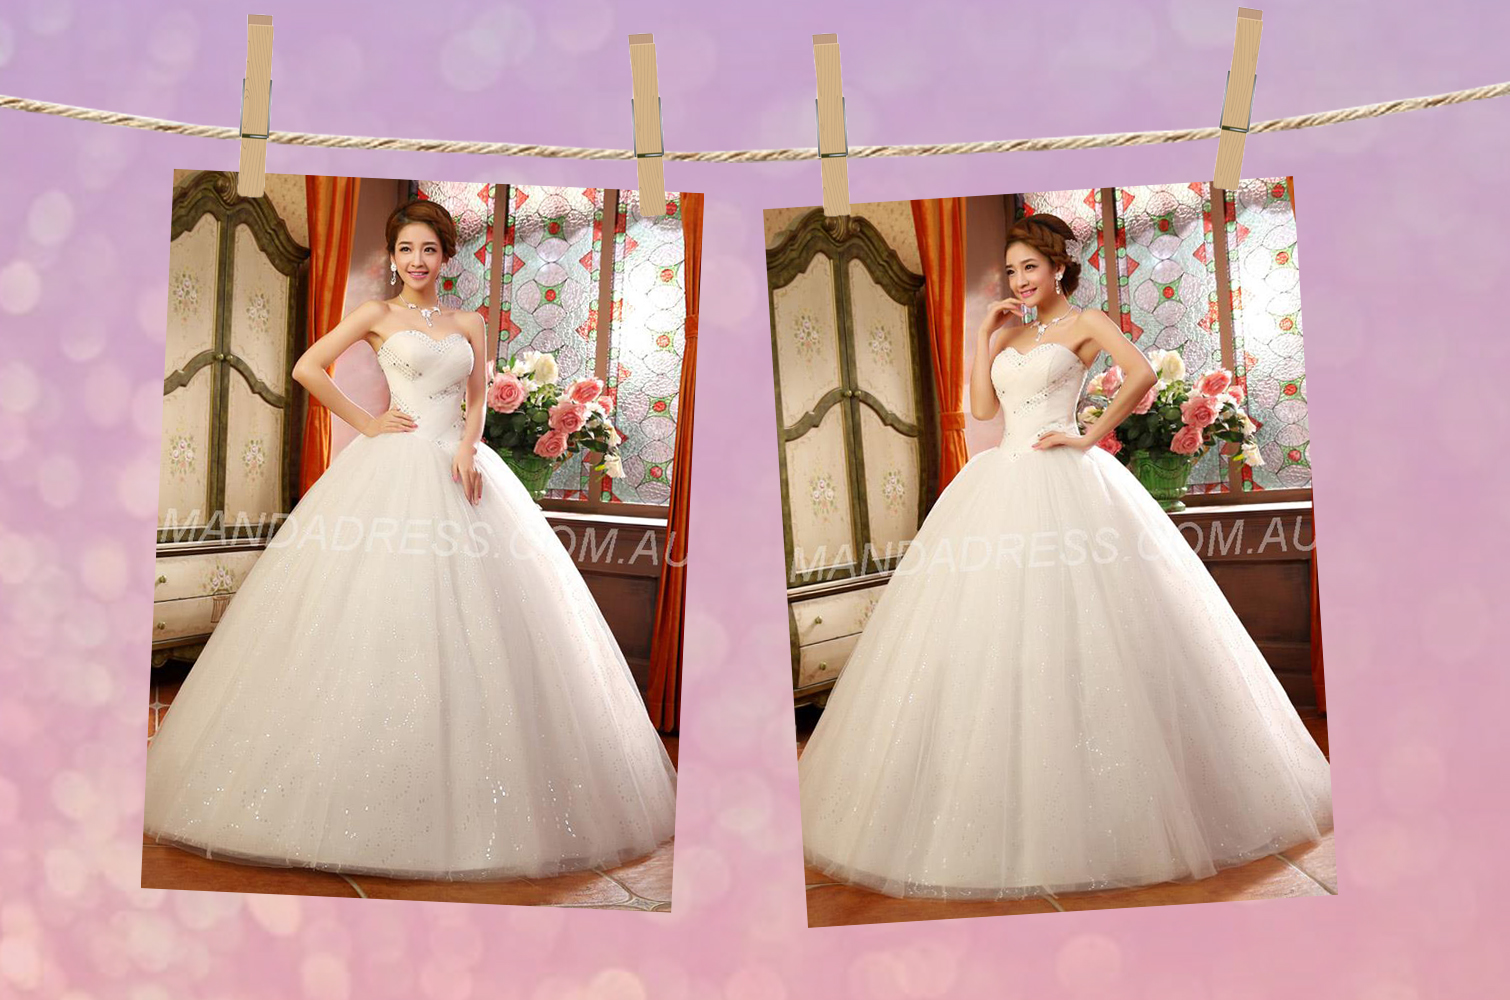 manda_wedding_dress3